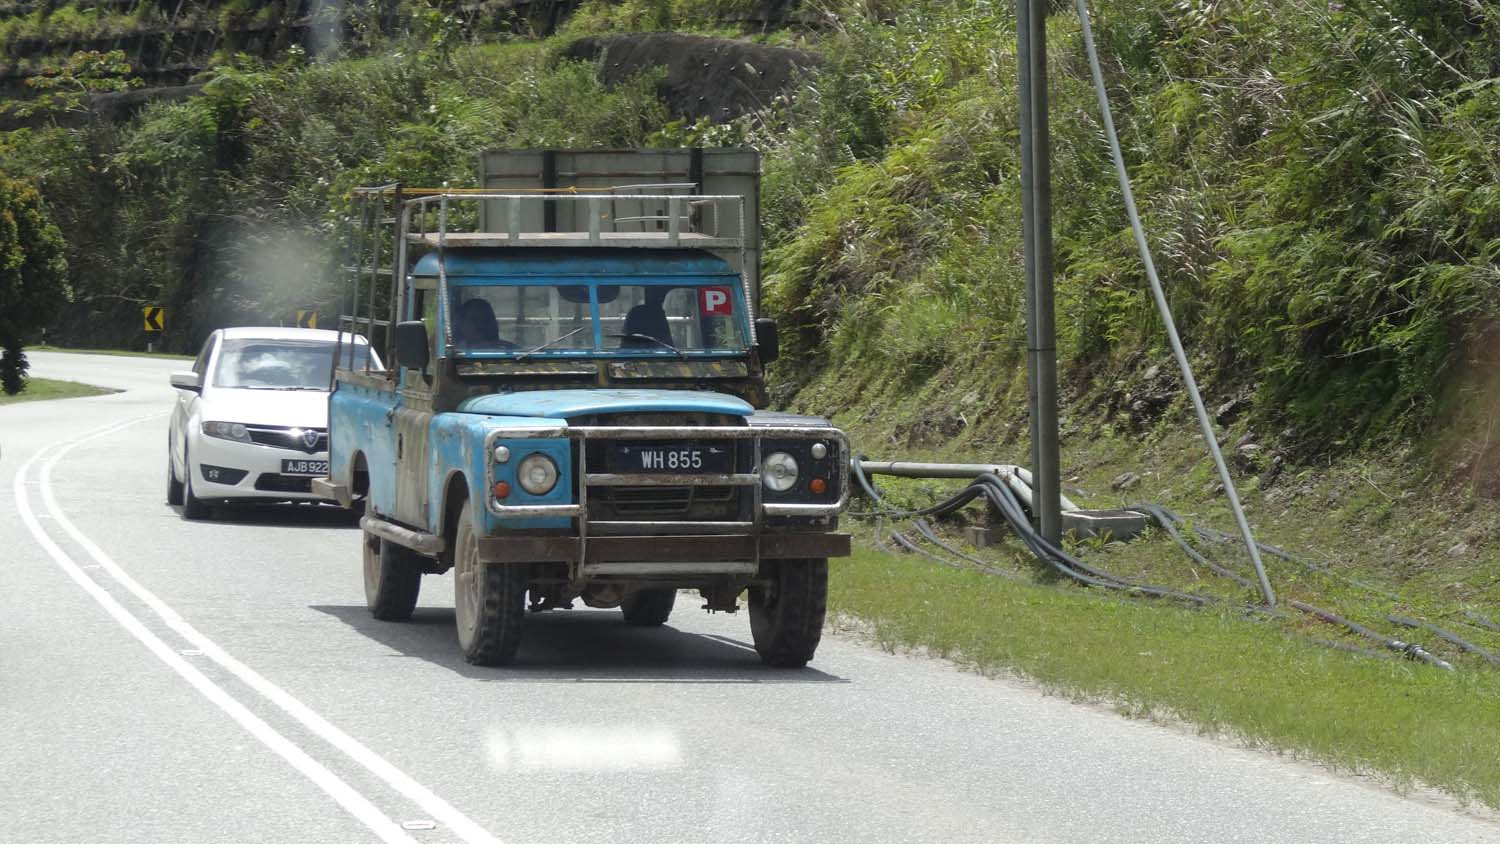 sooooo many land rovers in the Cameron Highlands